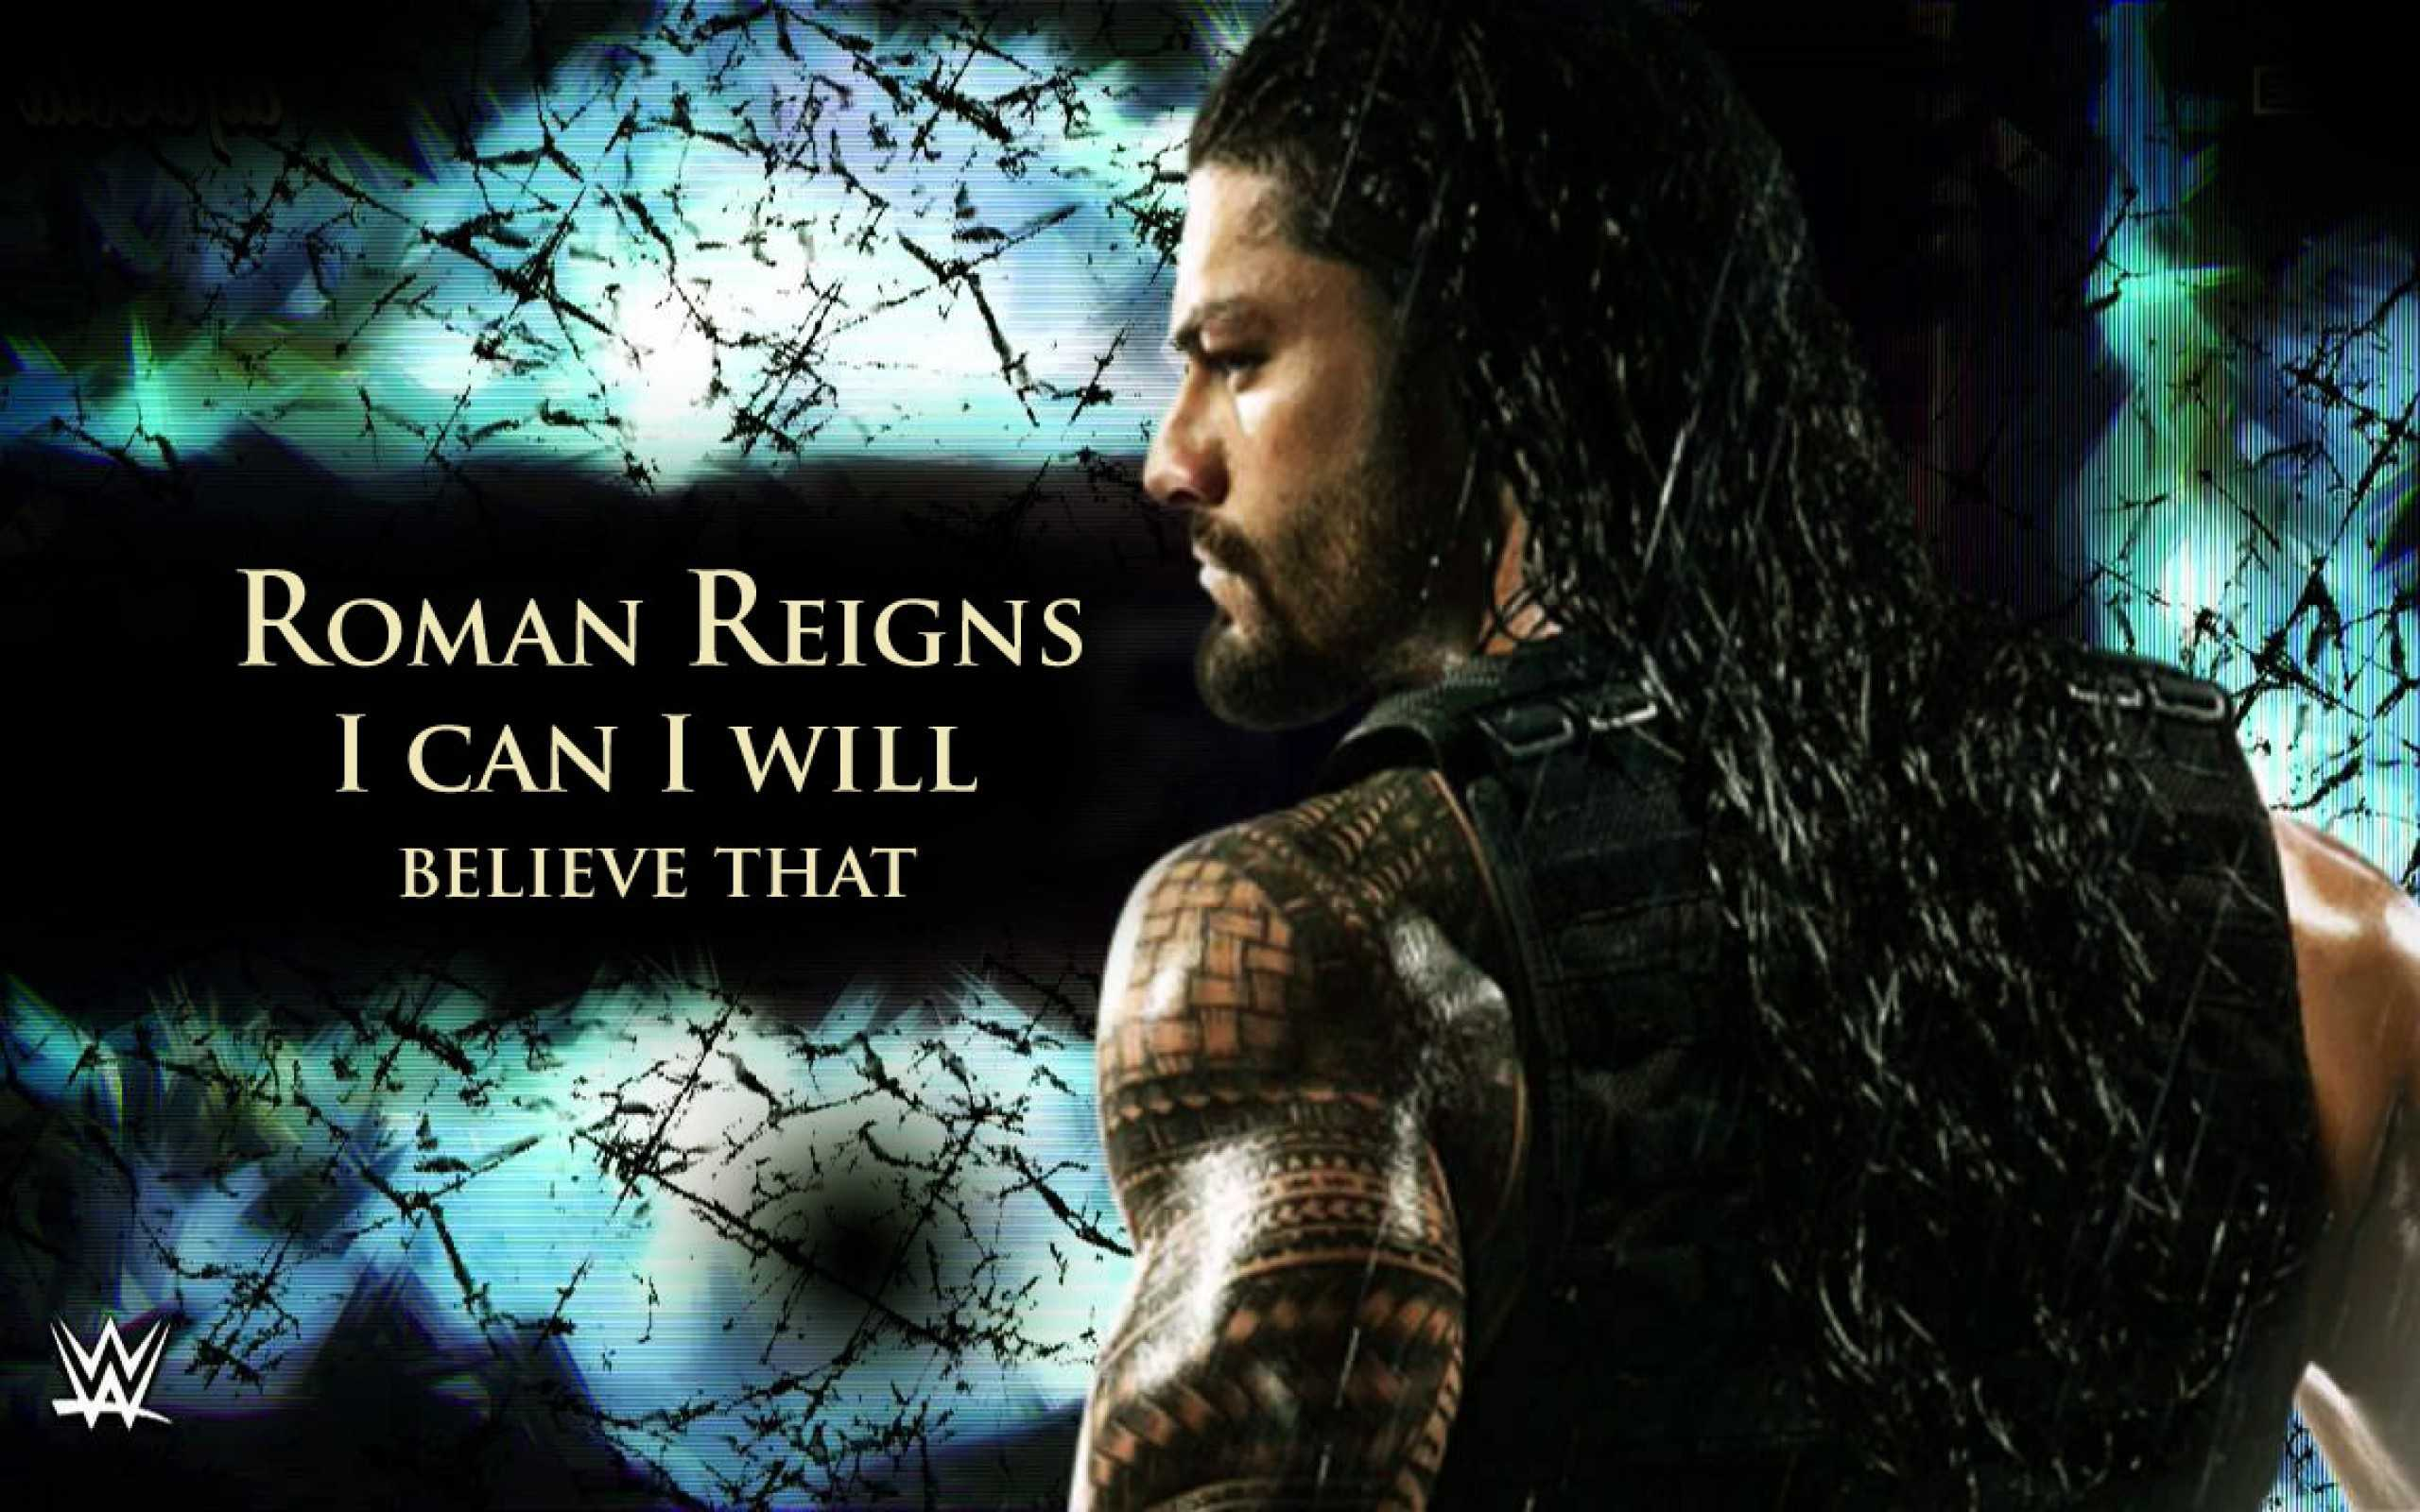 Roman Rengs Hd Wallpapers 2018 Pics Backgrounds Reigns Logo Yesecom